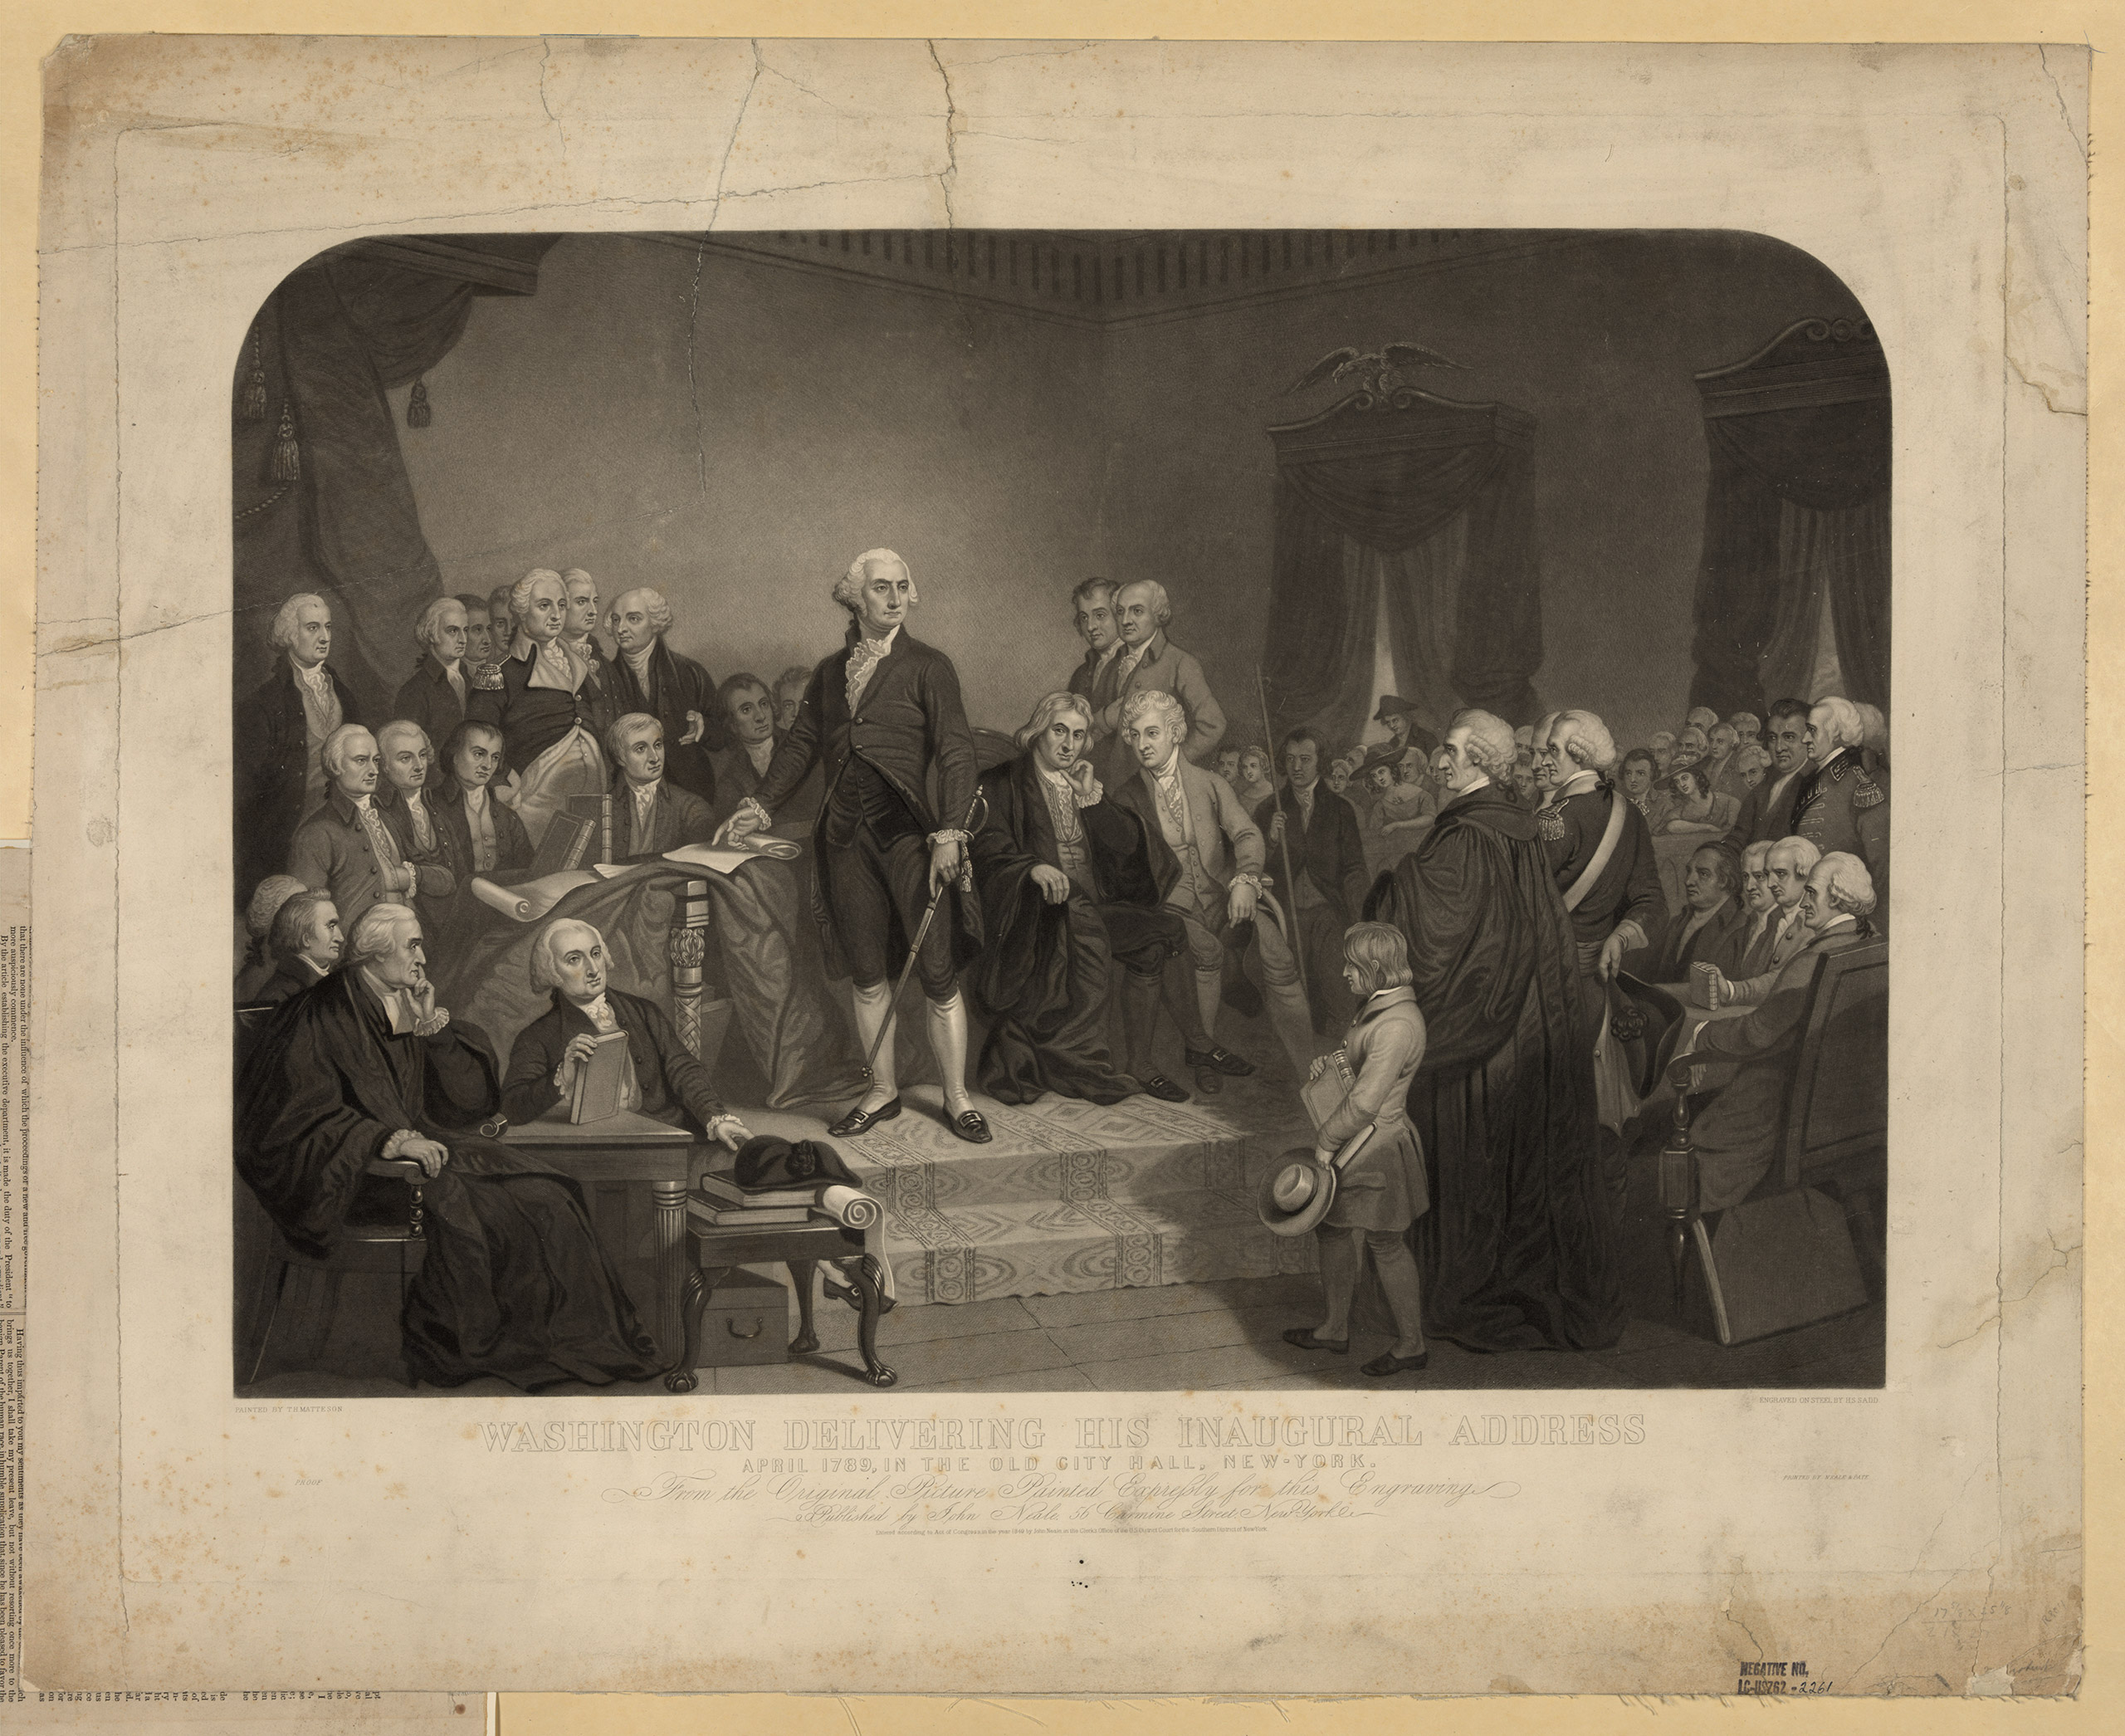 George Washington delivering his inaugural address, 1789.